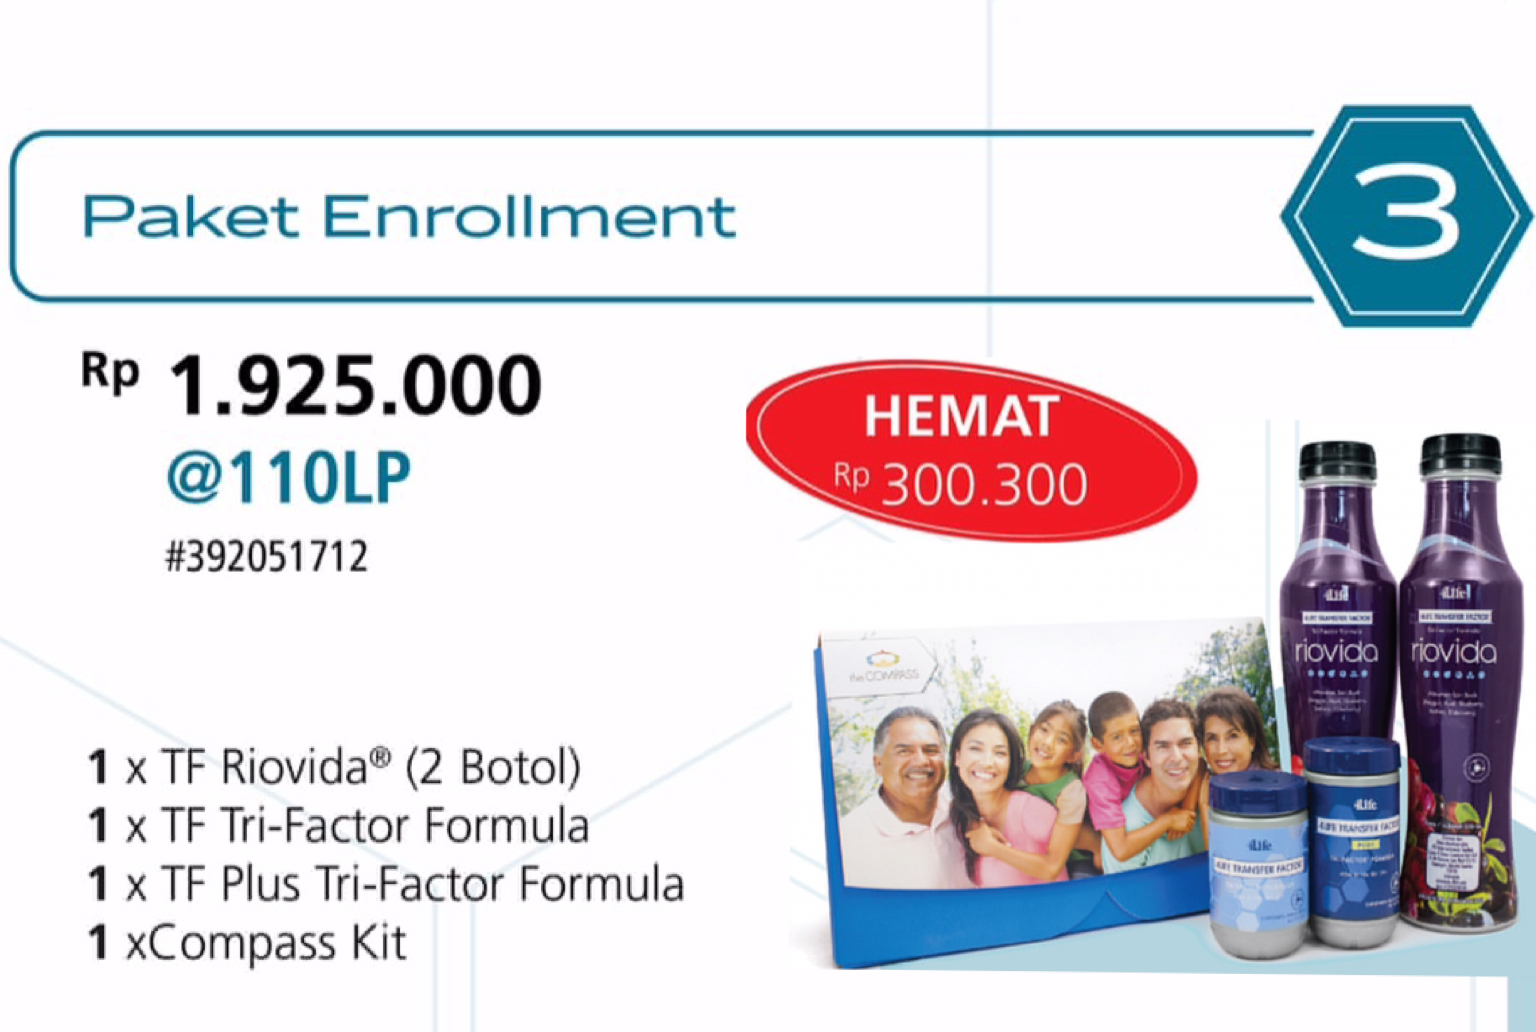 Paket ENROLLMENT 4Life Transfer Factor